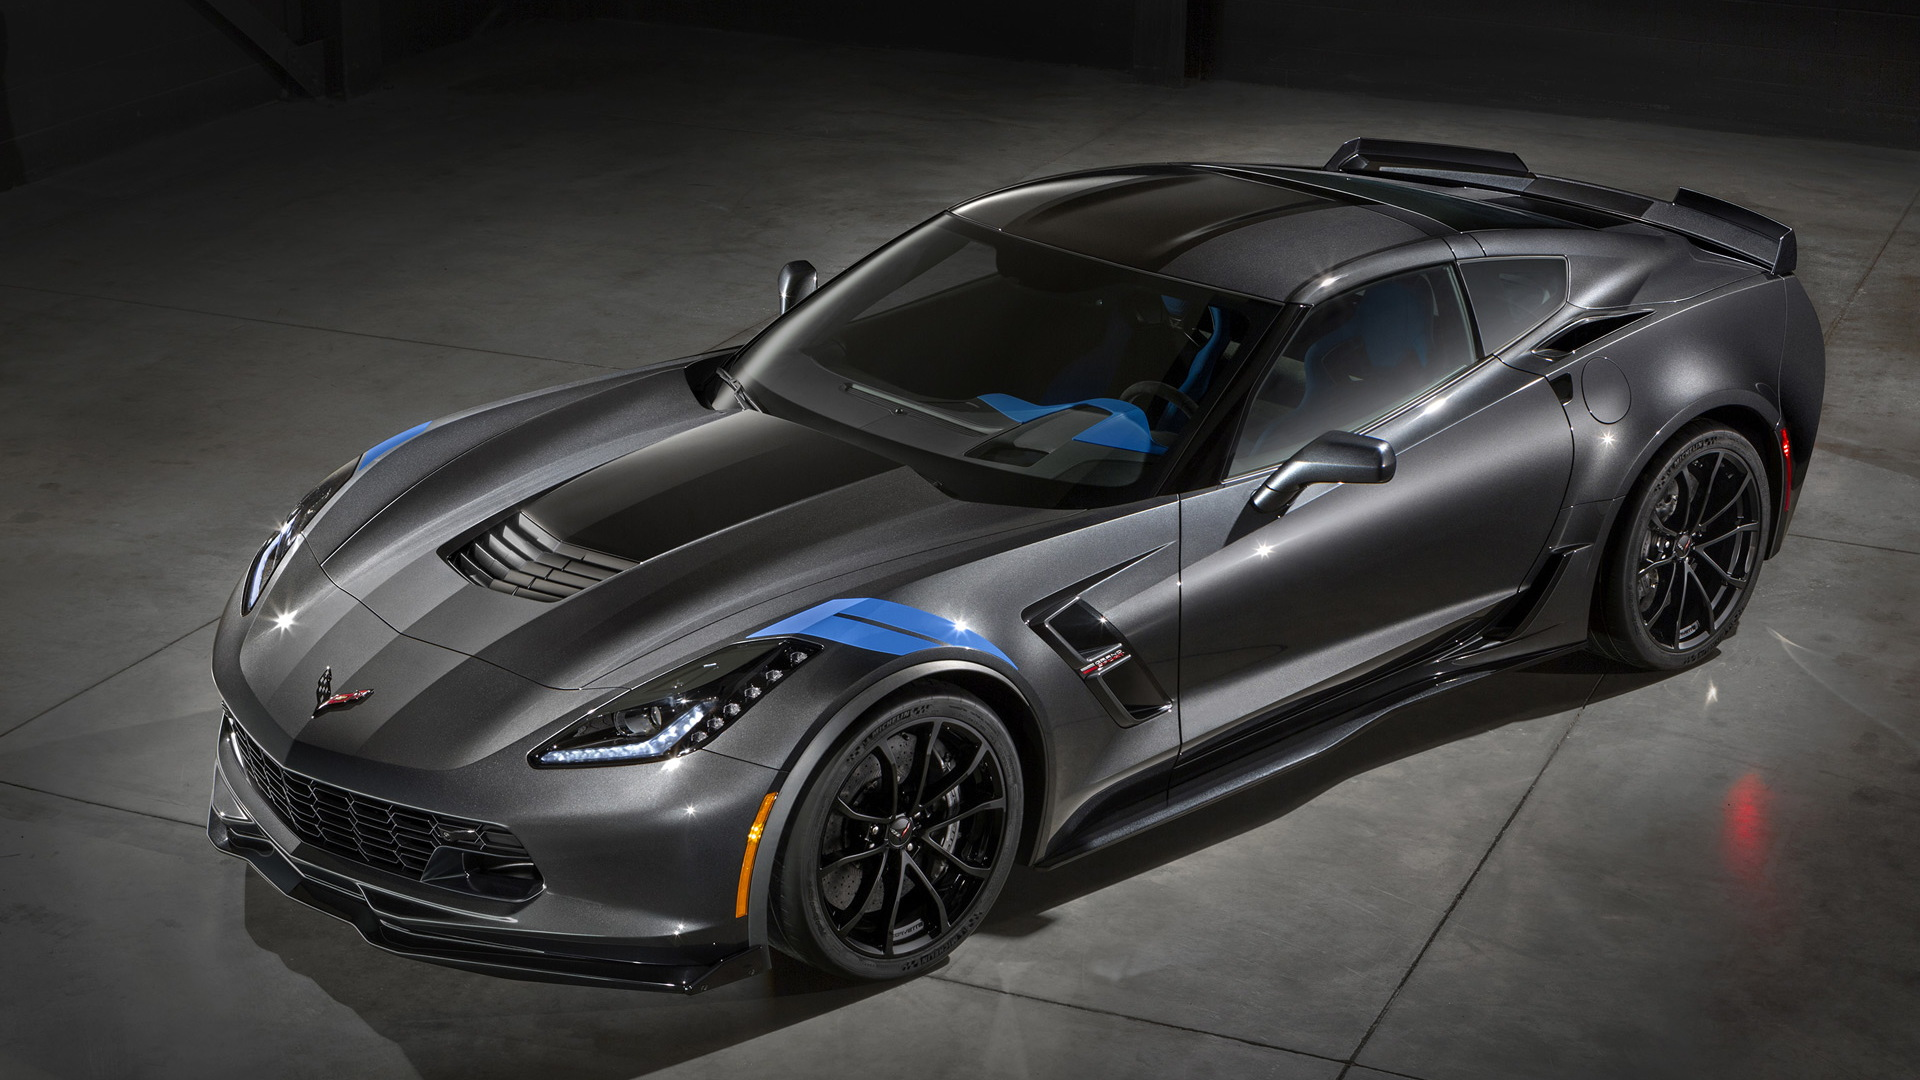 2017 Chevrolet Corvette Grand Sport Collector Edition